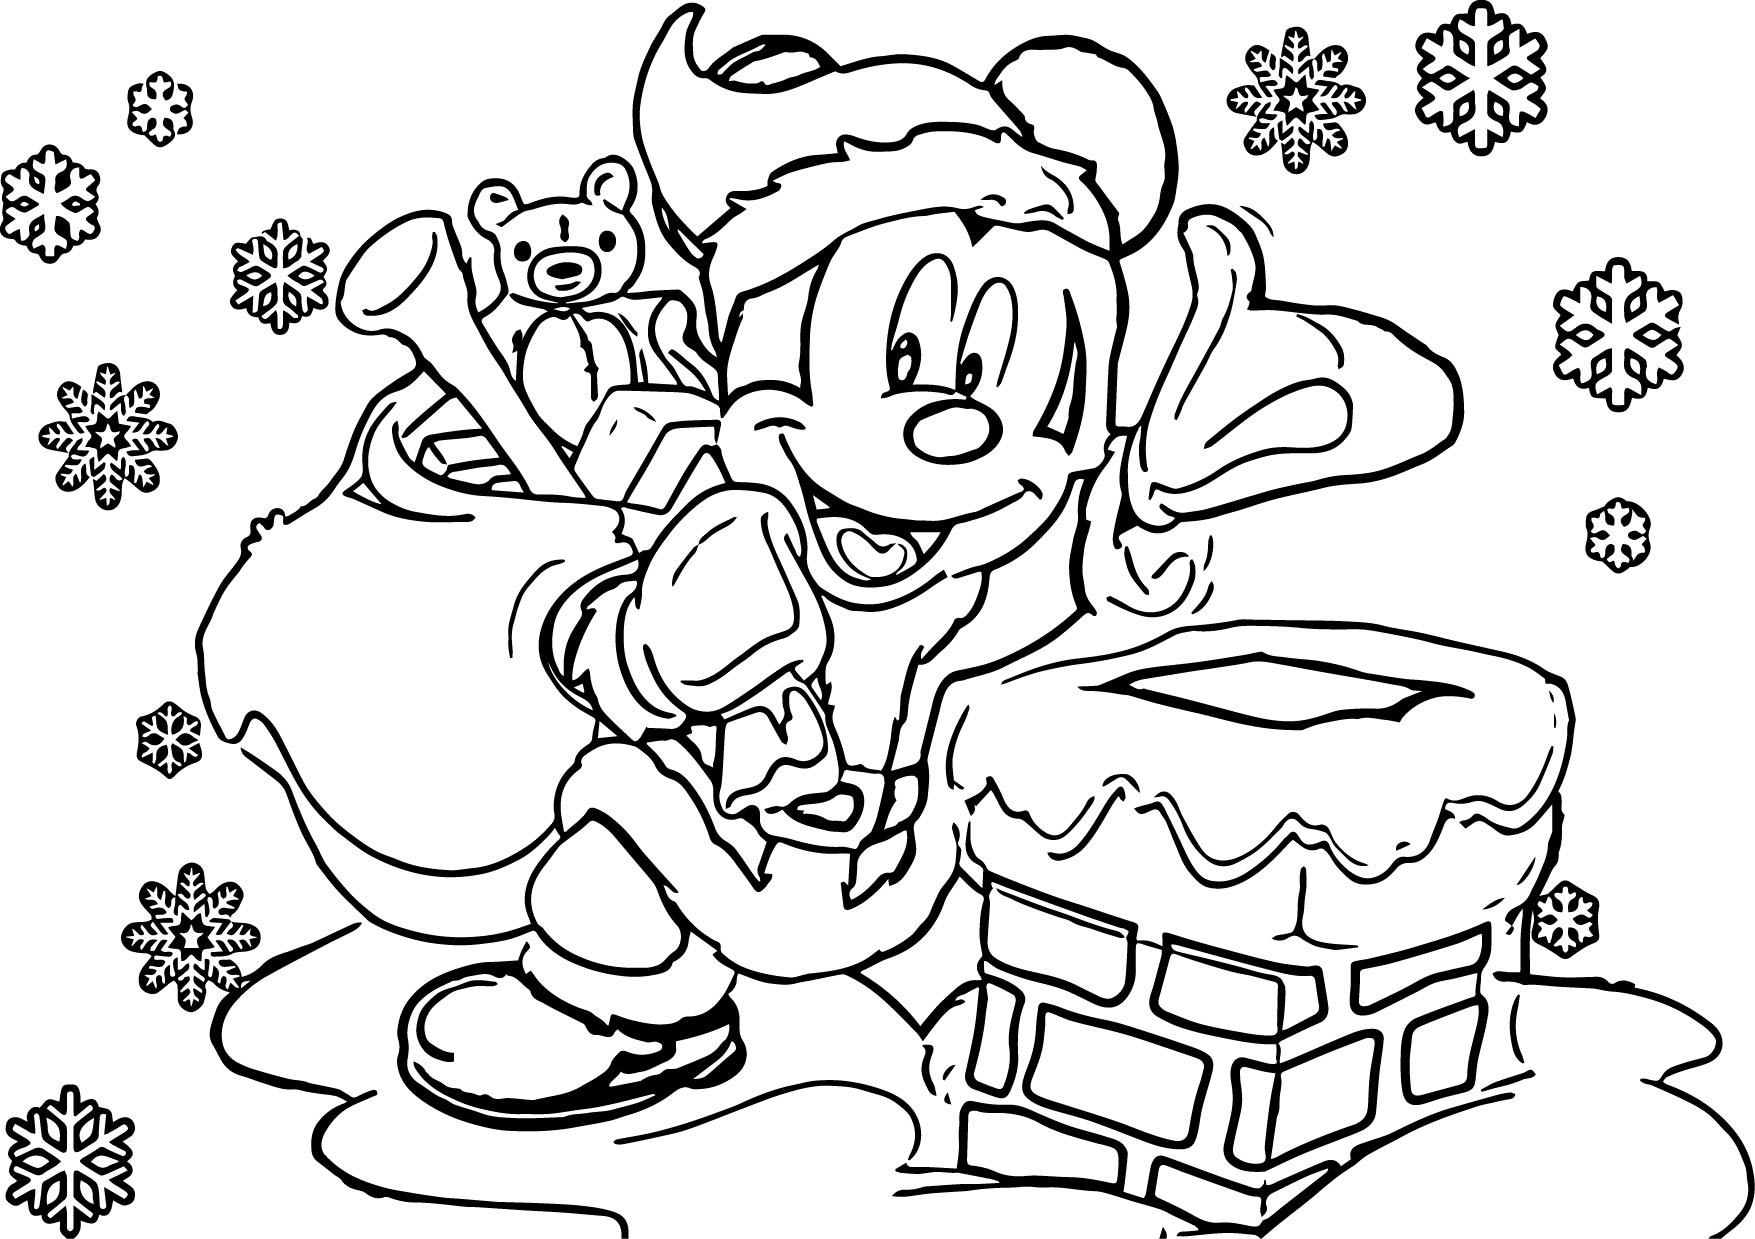 Christmas Coloring Pages For Adults Free Printable With All Information About